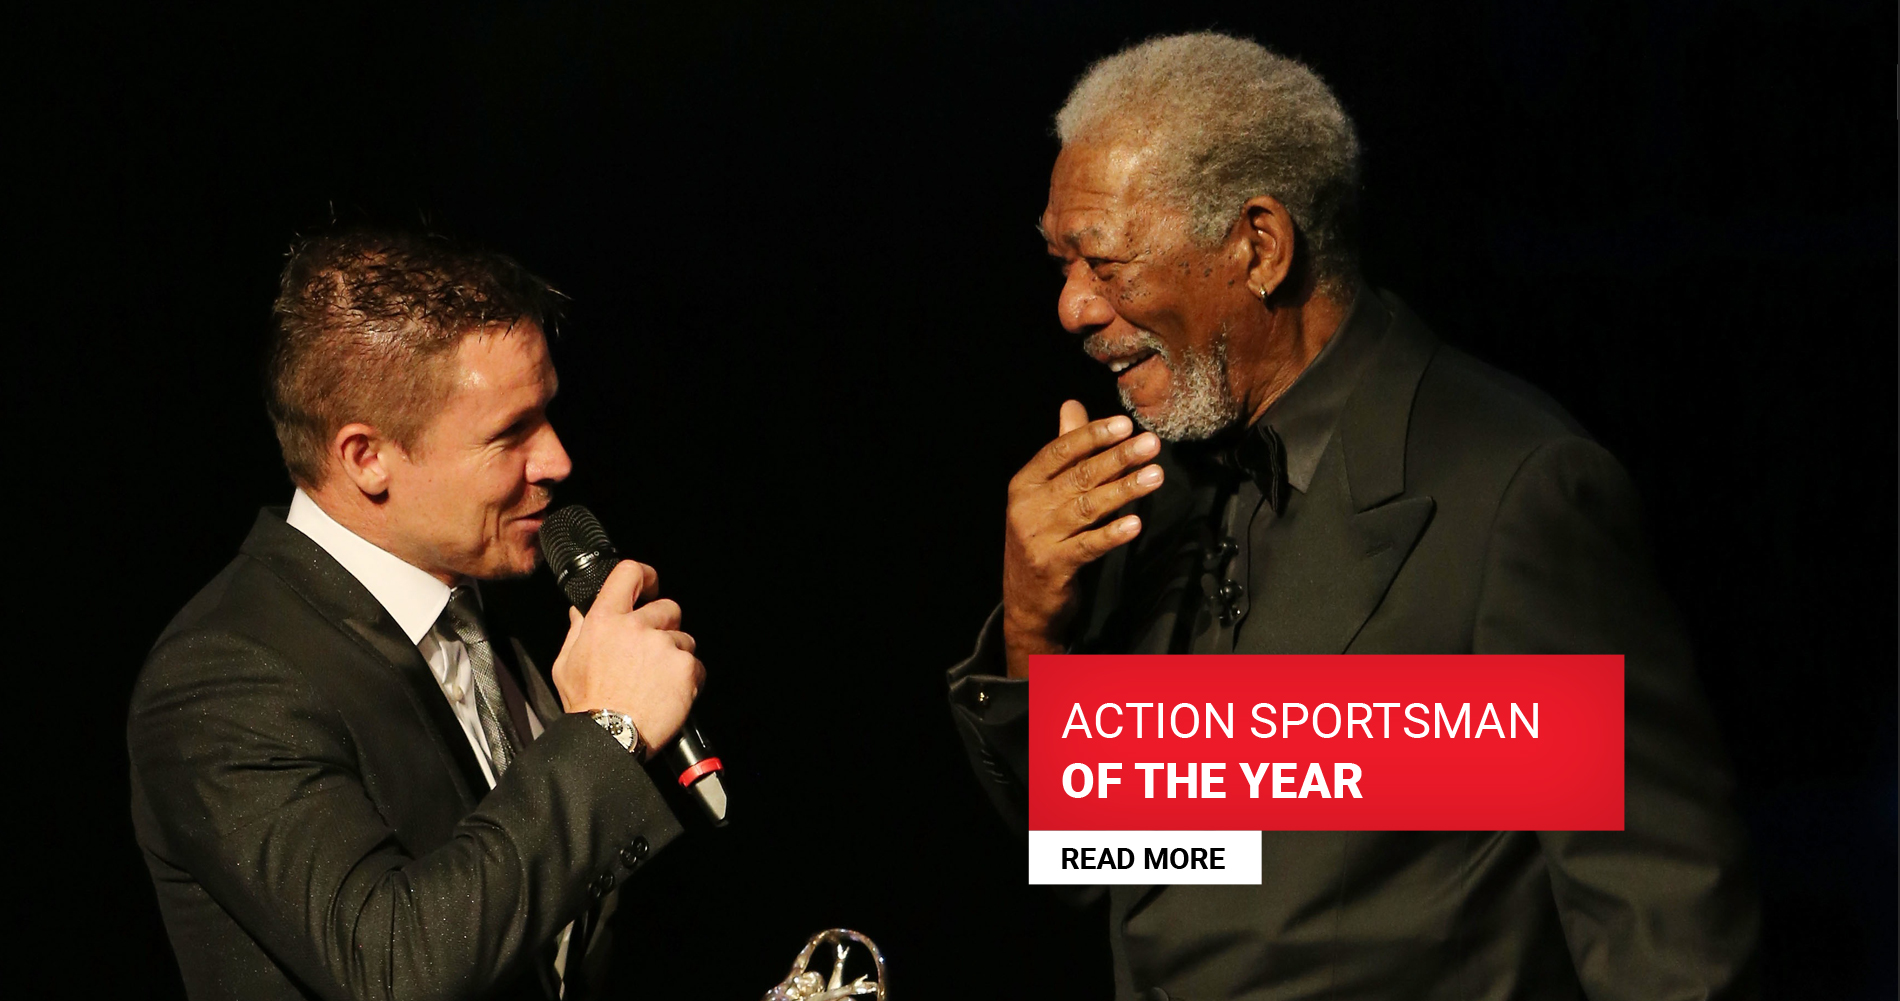 ACTION SPORTSMAN OF THE YEAR